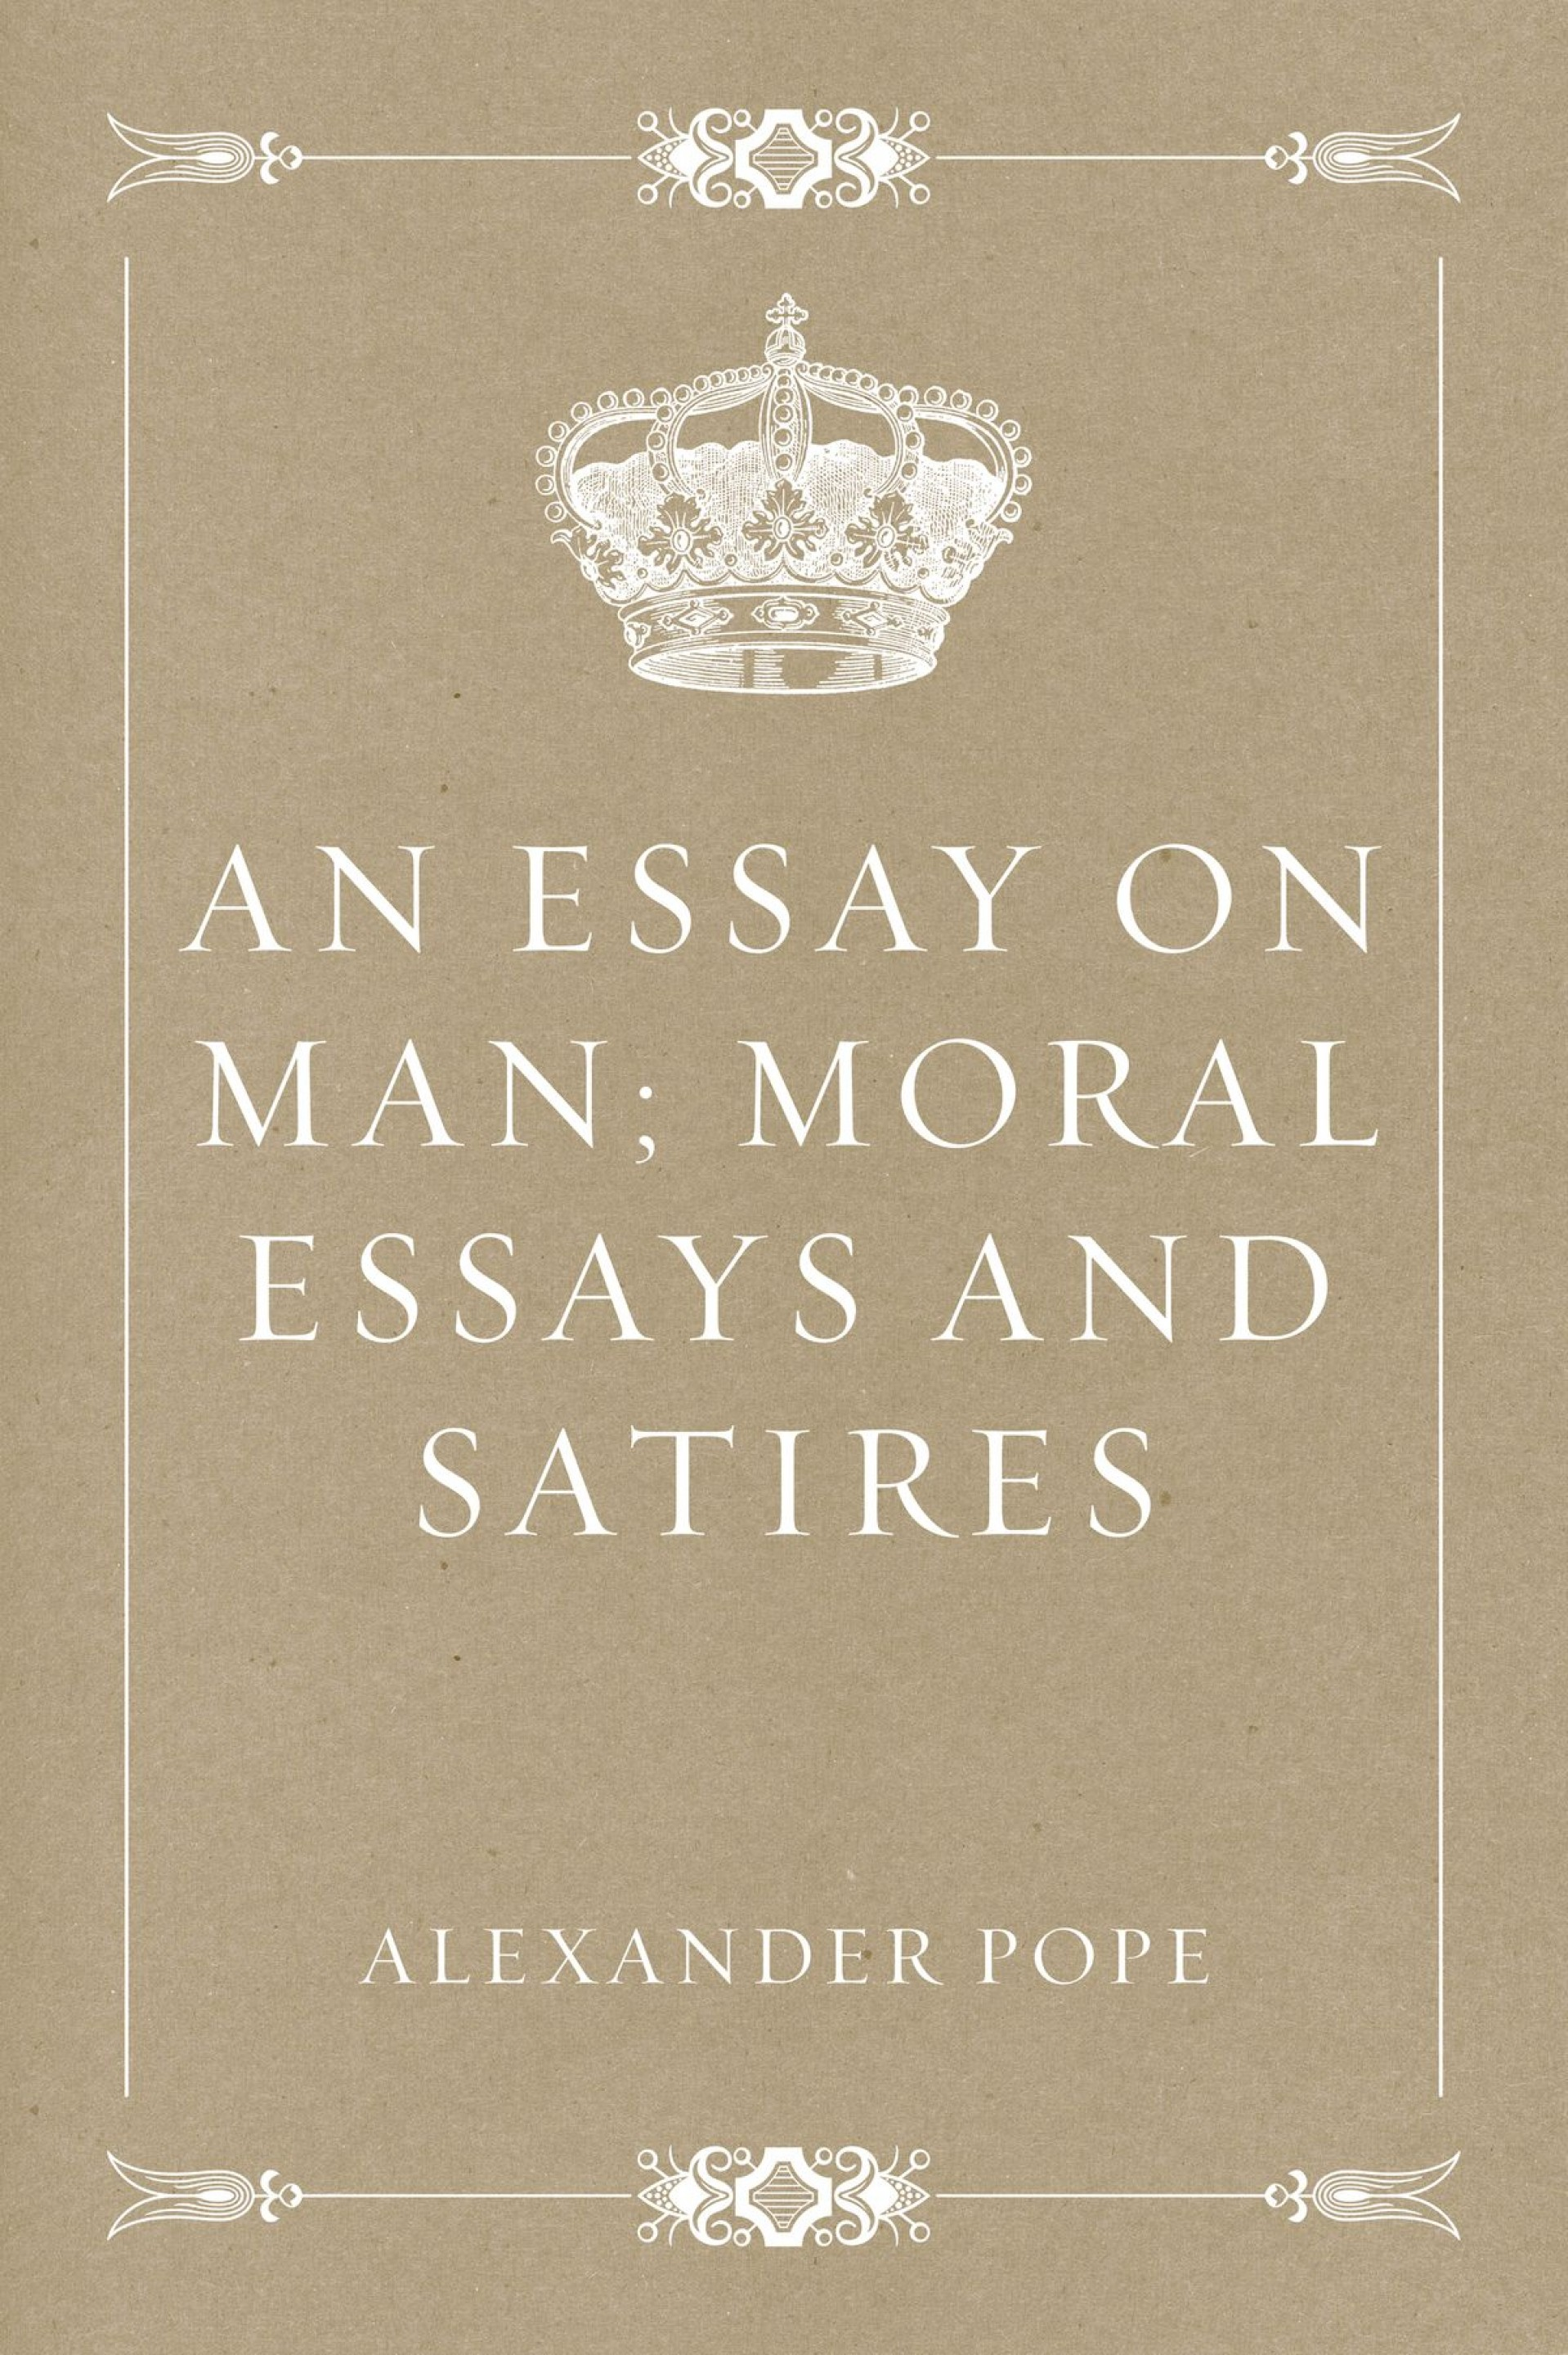 004 Essay Example On Man An Moral Essays And Satires Stirring By Alexander Pope Analysis Pdf Critical Manners Reveal Character 1920